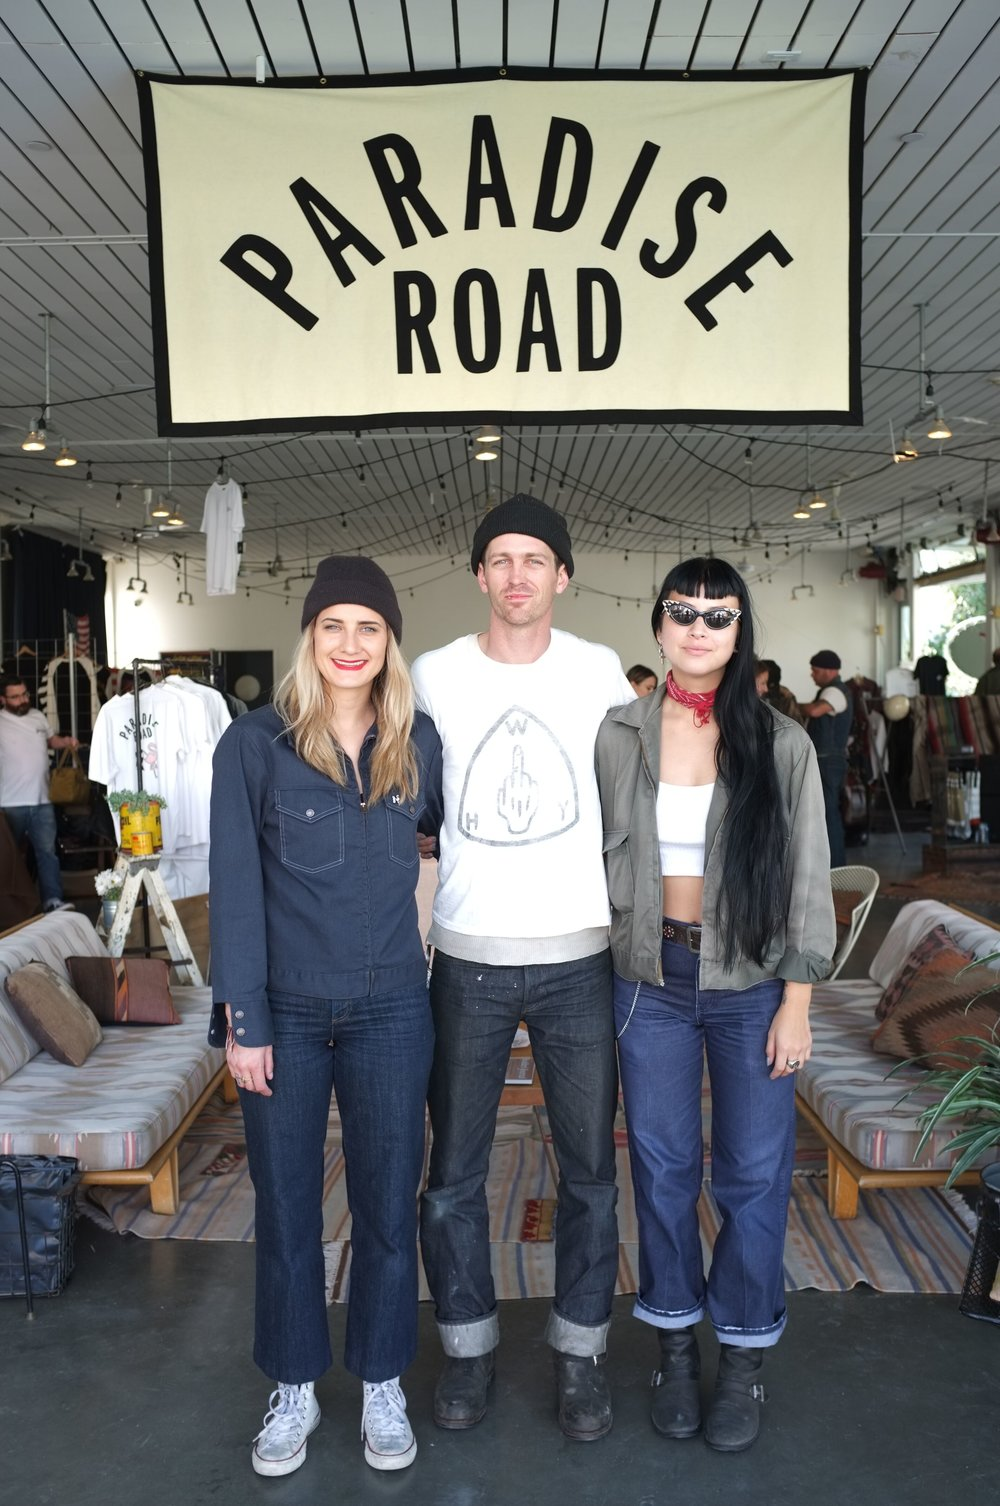 Lana MacNaughton, Chase Stopnik and Adri Law: The organizers of Paradise Road Show